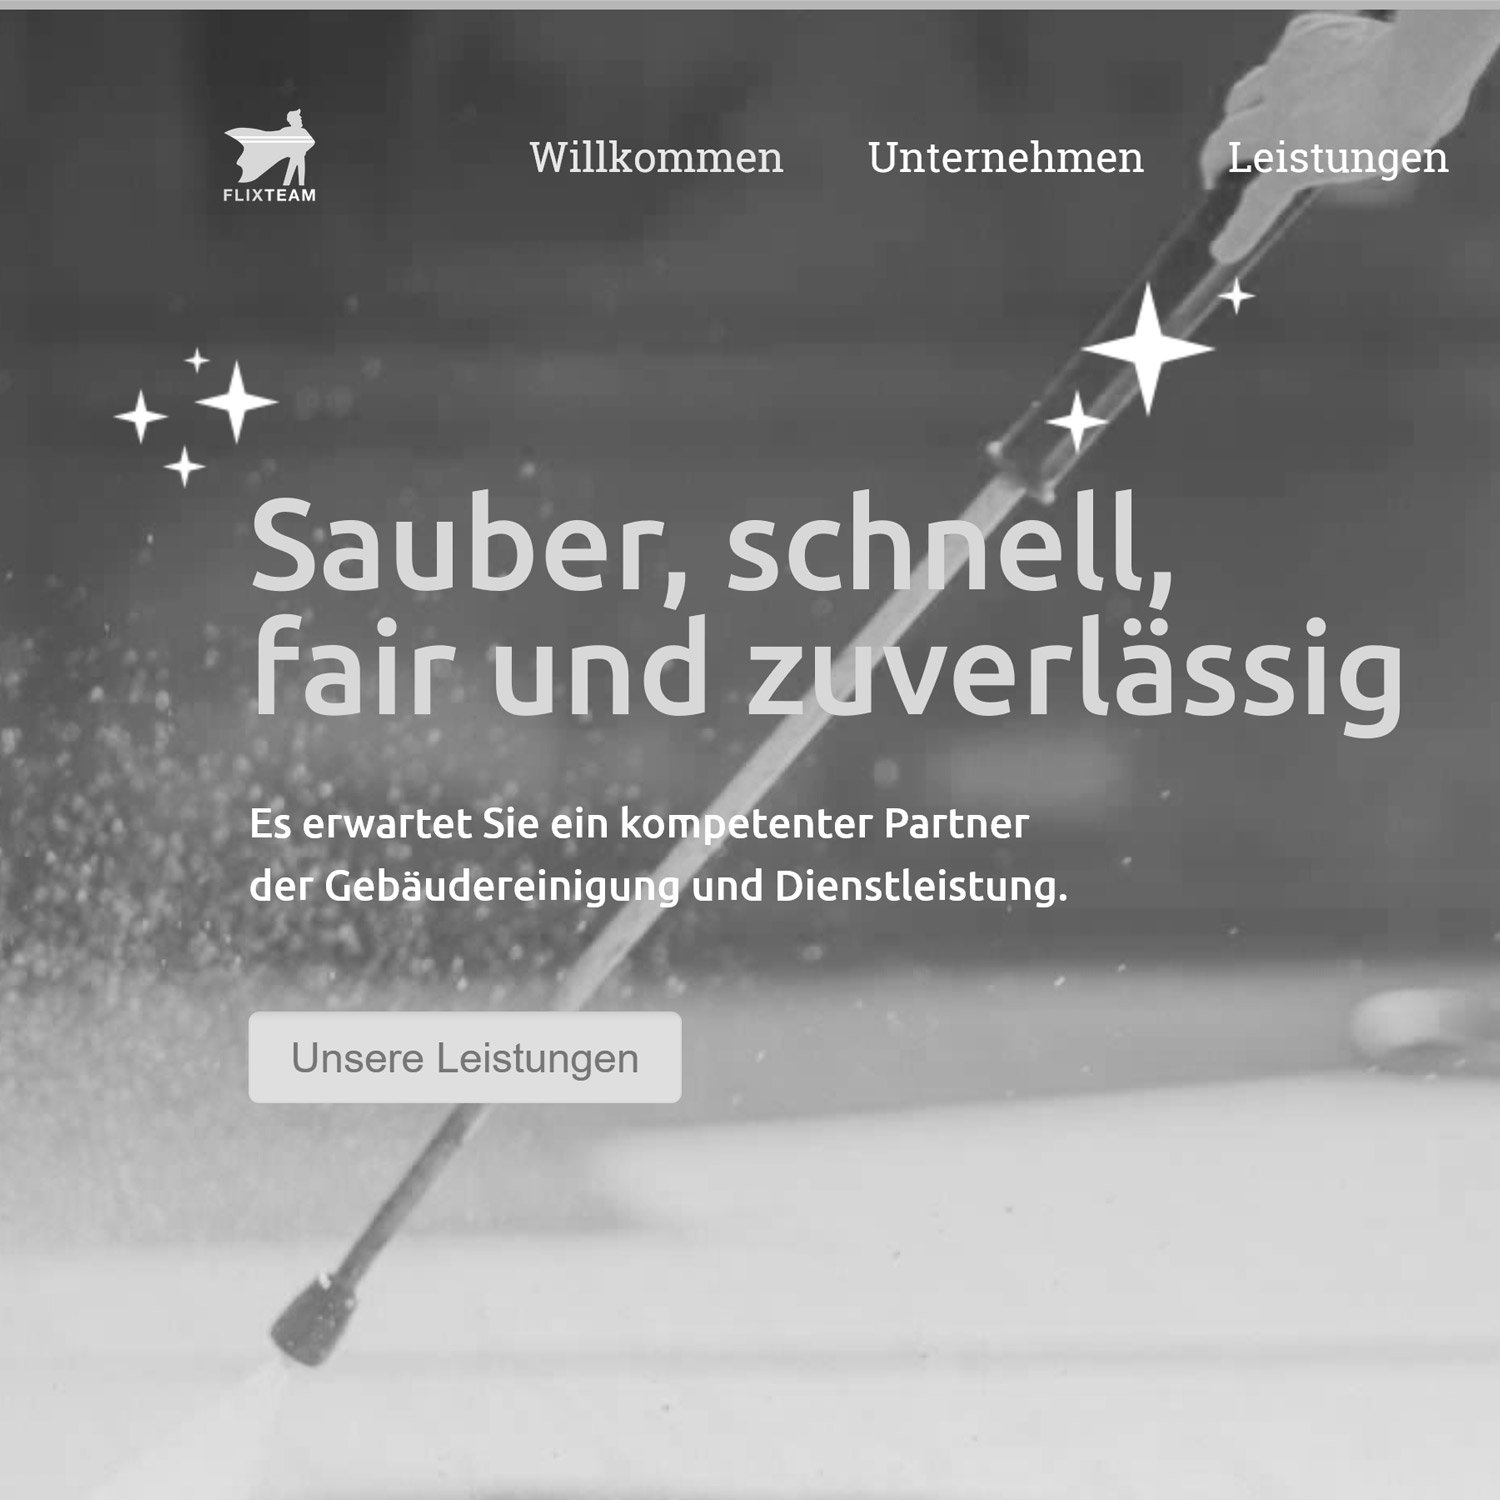 design-op-webdesign-studio-berlin-webentwicklung-seo-marketing-mehr-projekt-flixteam